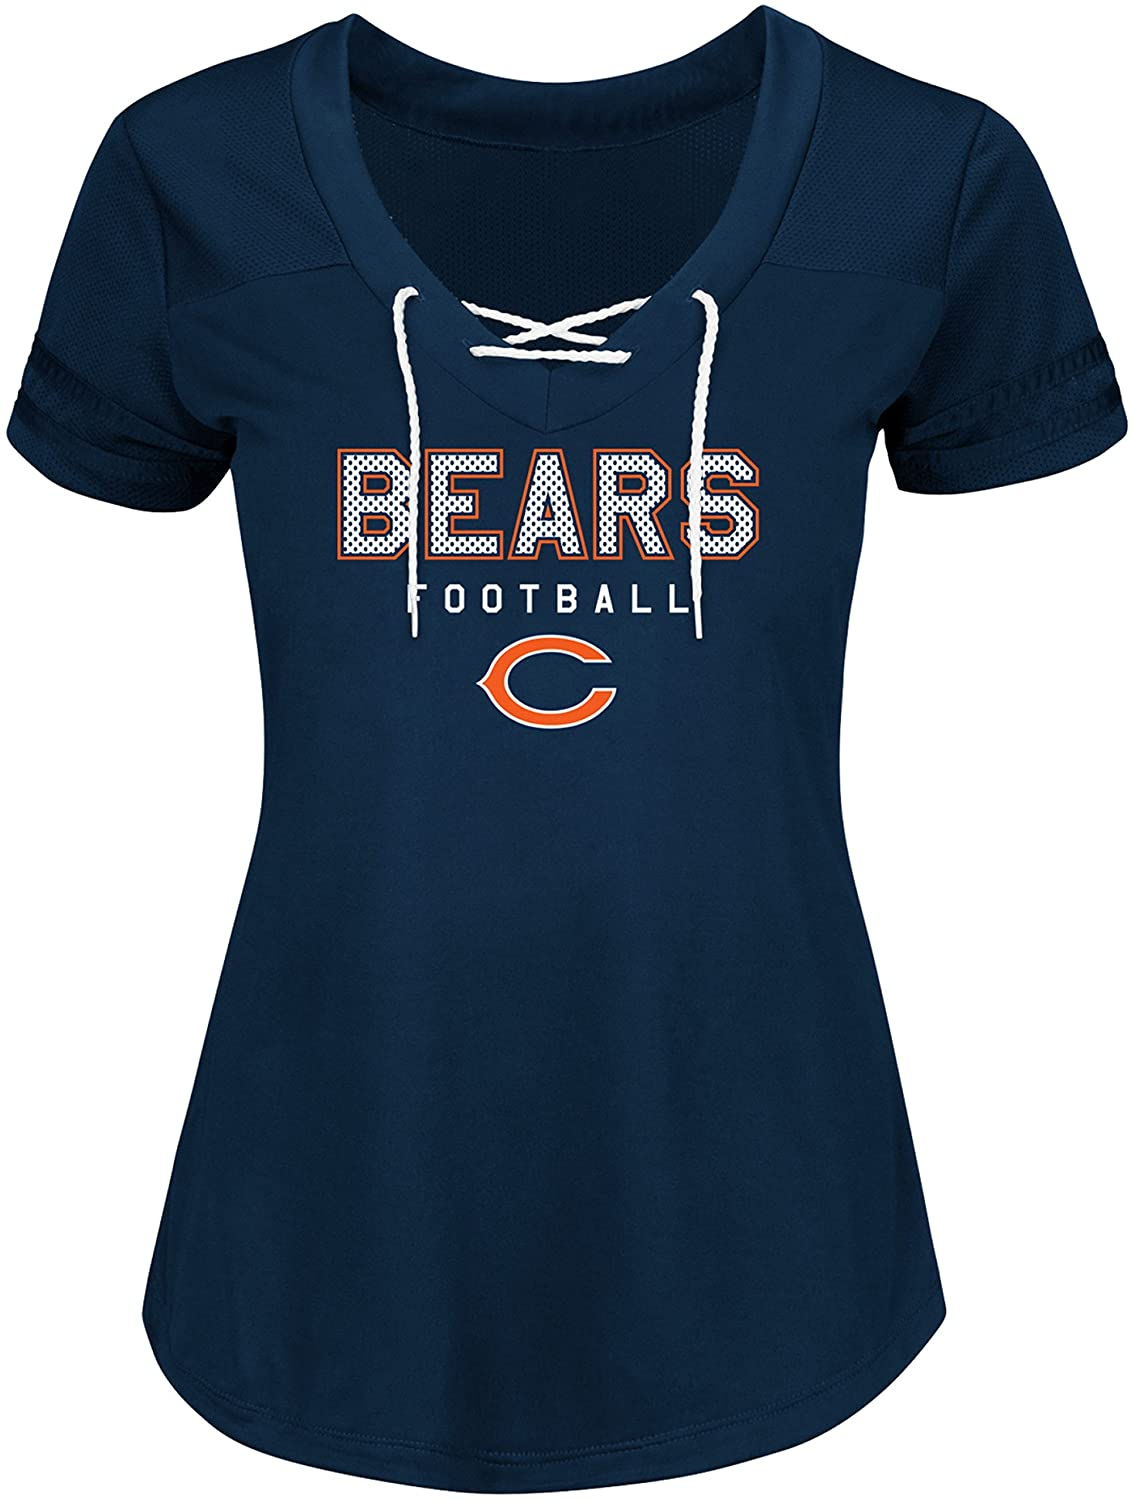 the best attitude a0da4 cc525 Amazon.com   NFL Chicago Bears Women s Short Sleeve V-Neck Synthetic Lace Up  Tee, X-Small, Navy White   Clothing